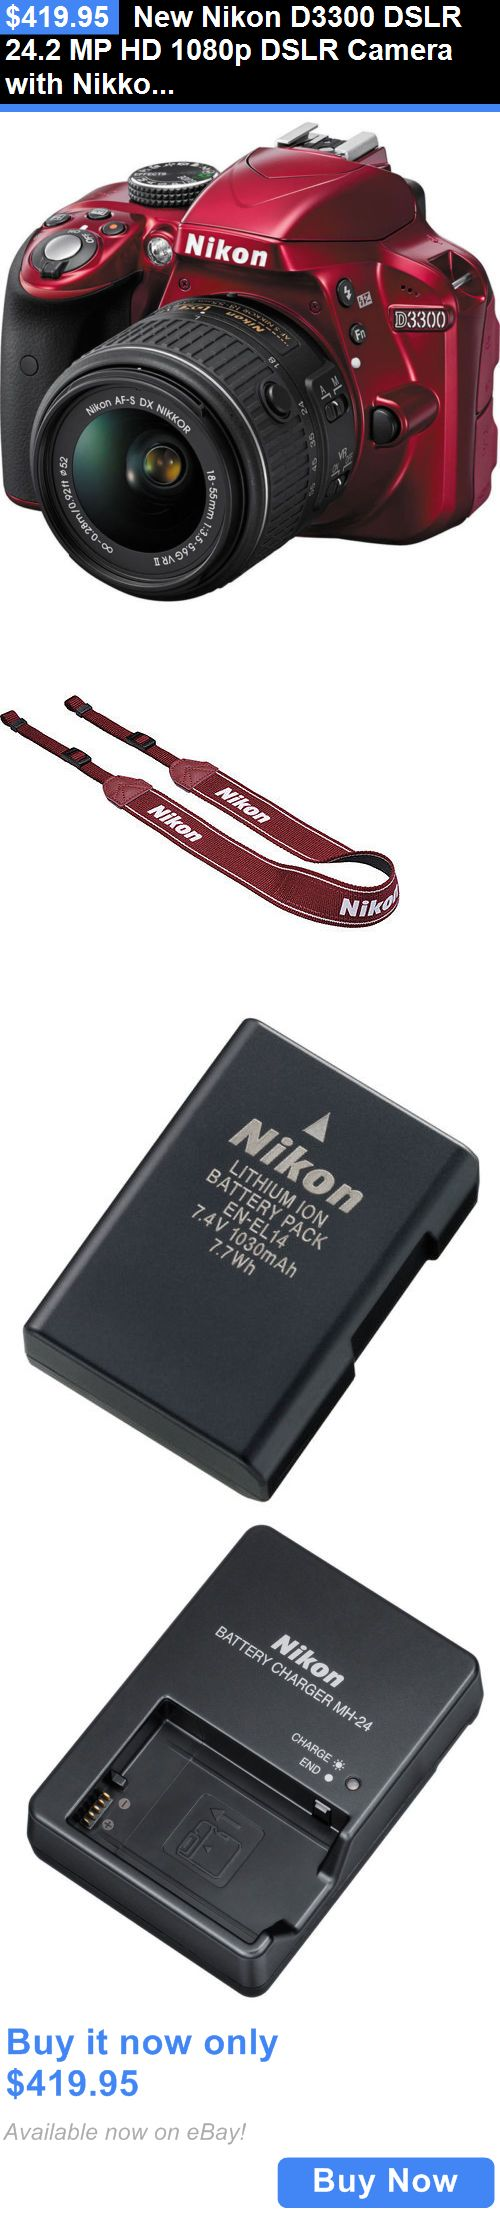 Nikon D3000 Diagram Not Lossing Wiring Camera Parts 28919 Best Cameras And Accessories Images On Pinterest 7200 Internal